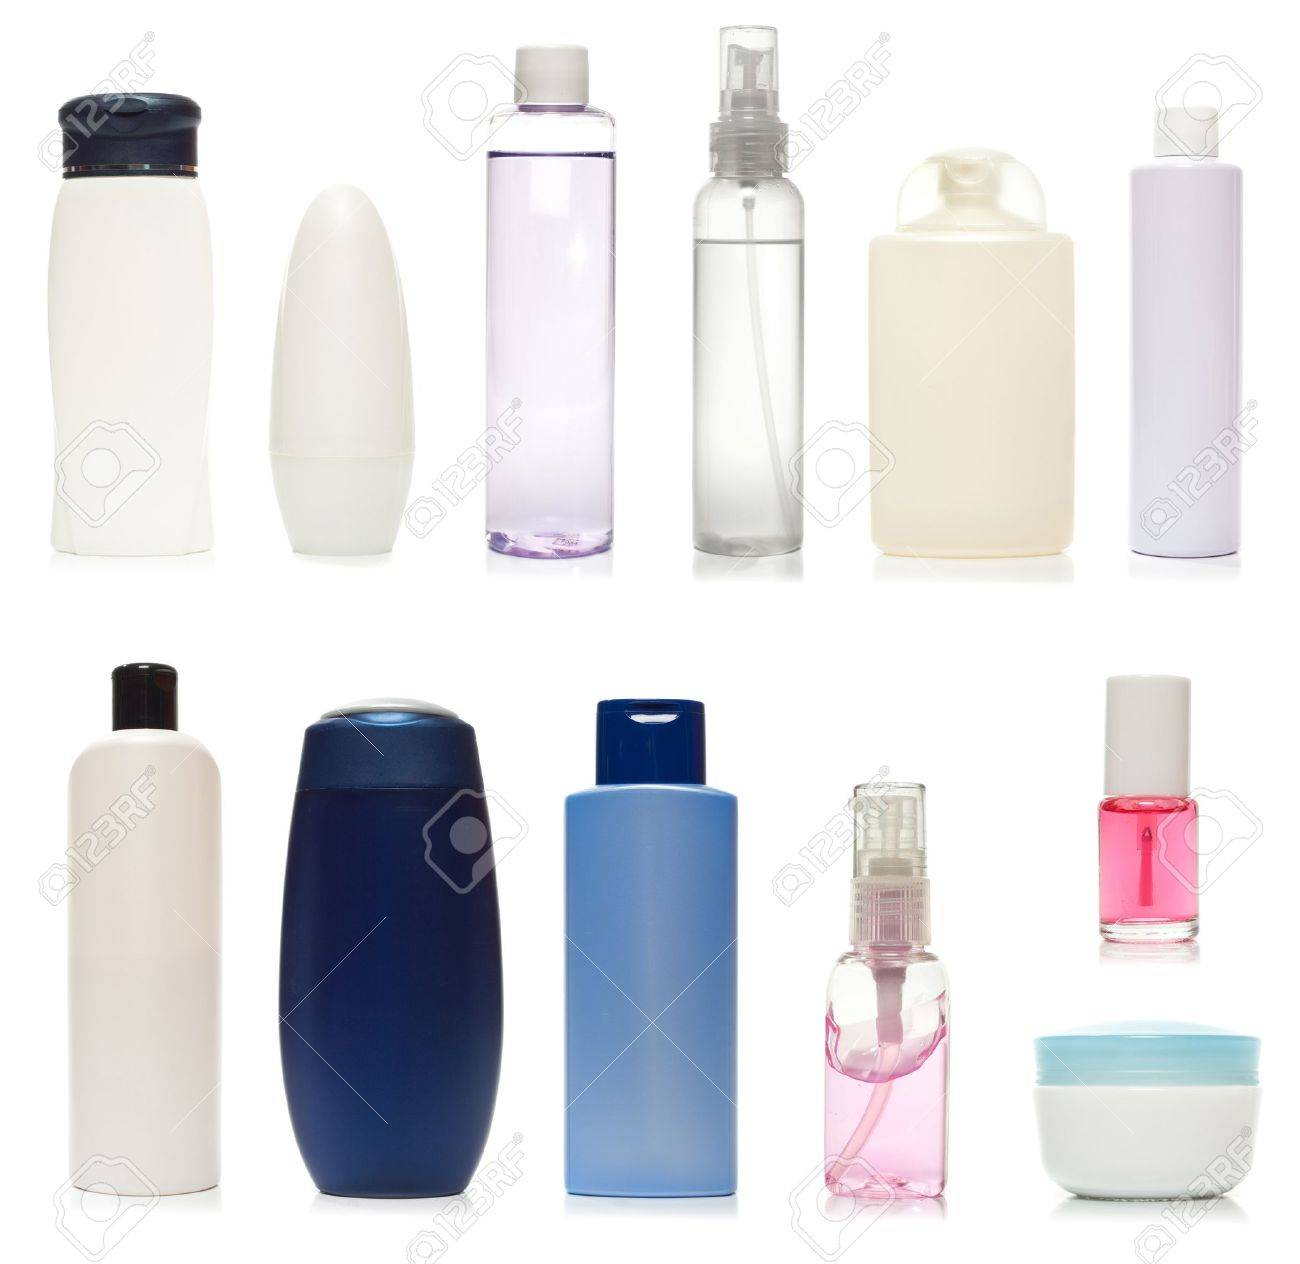 Set of plastic bottles of body care and beauty products Stock Photo - 10677429